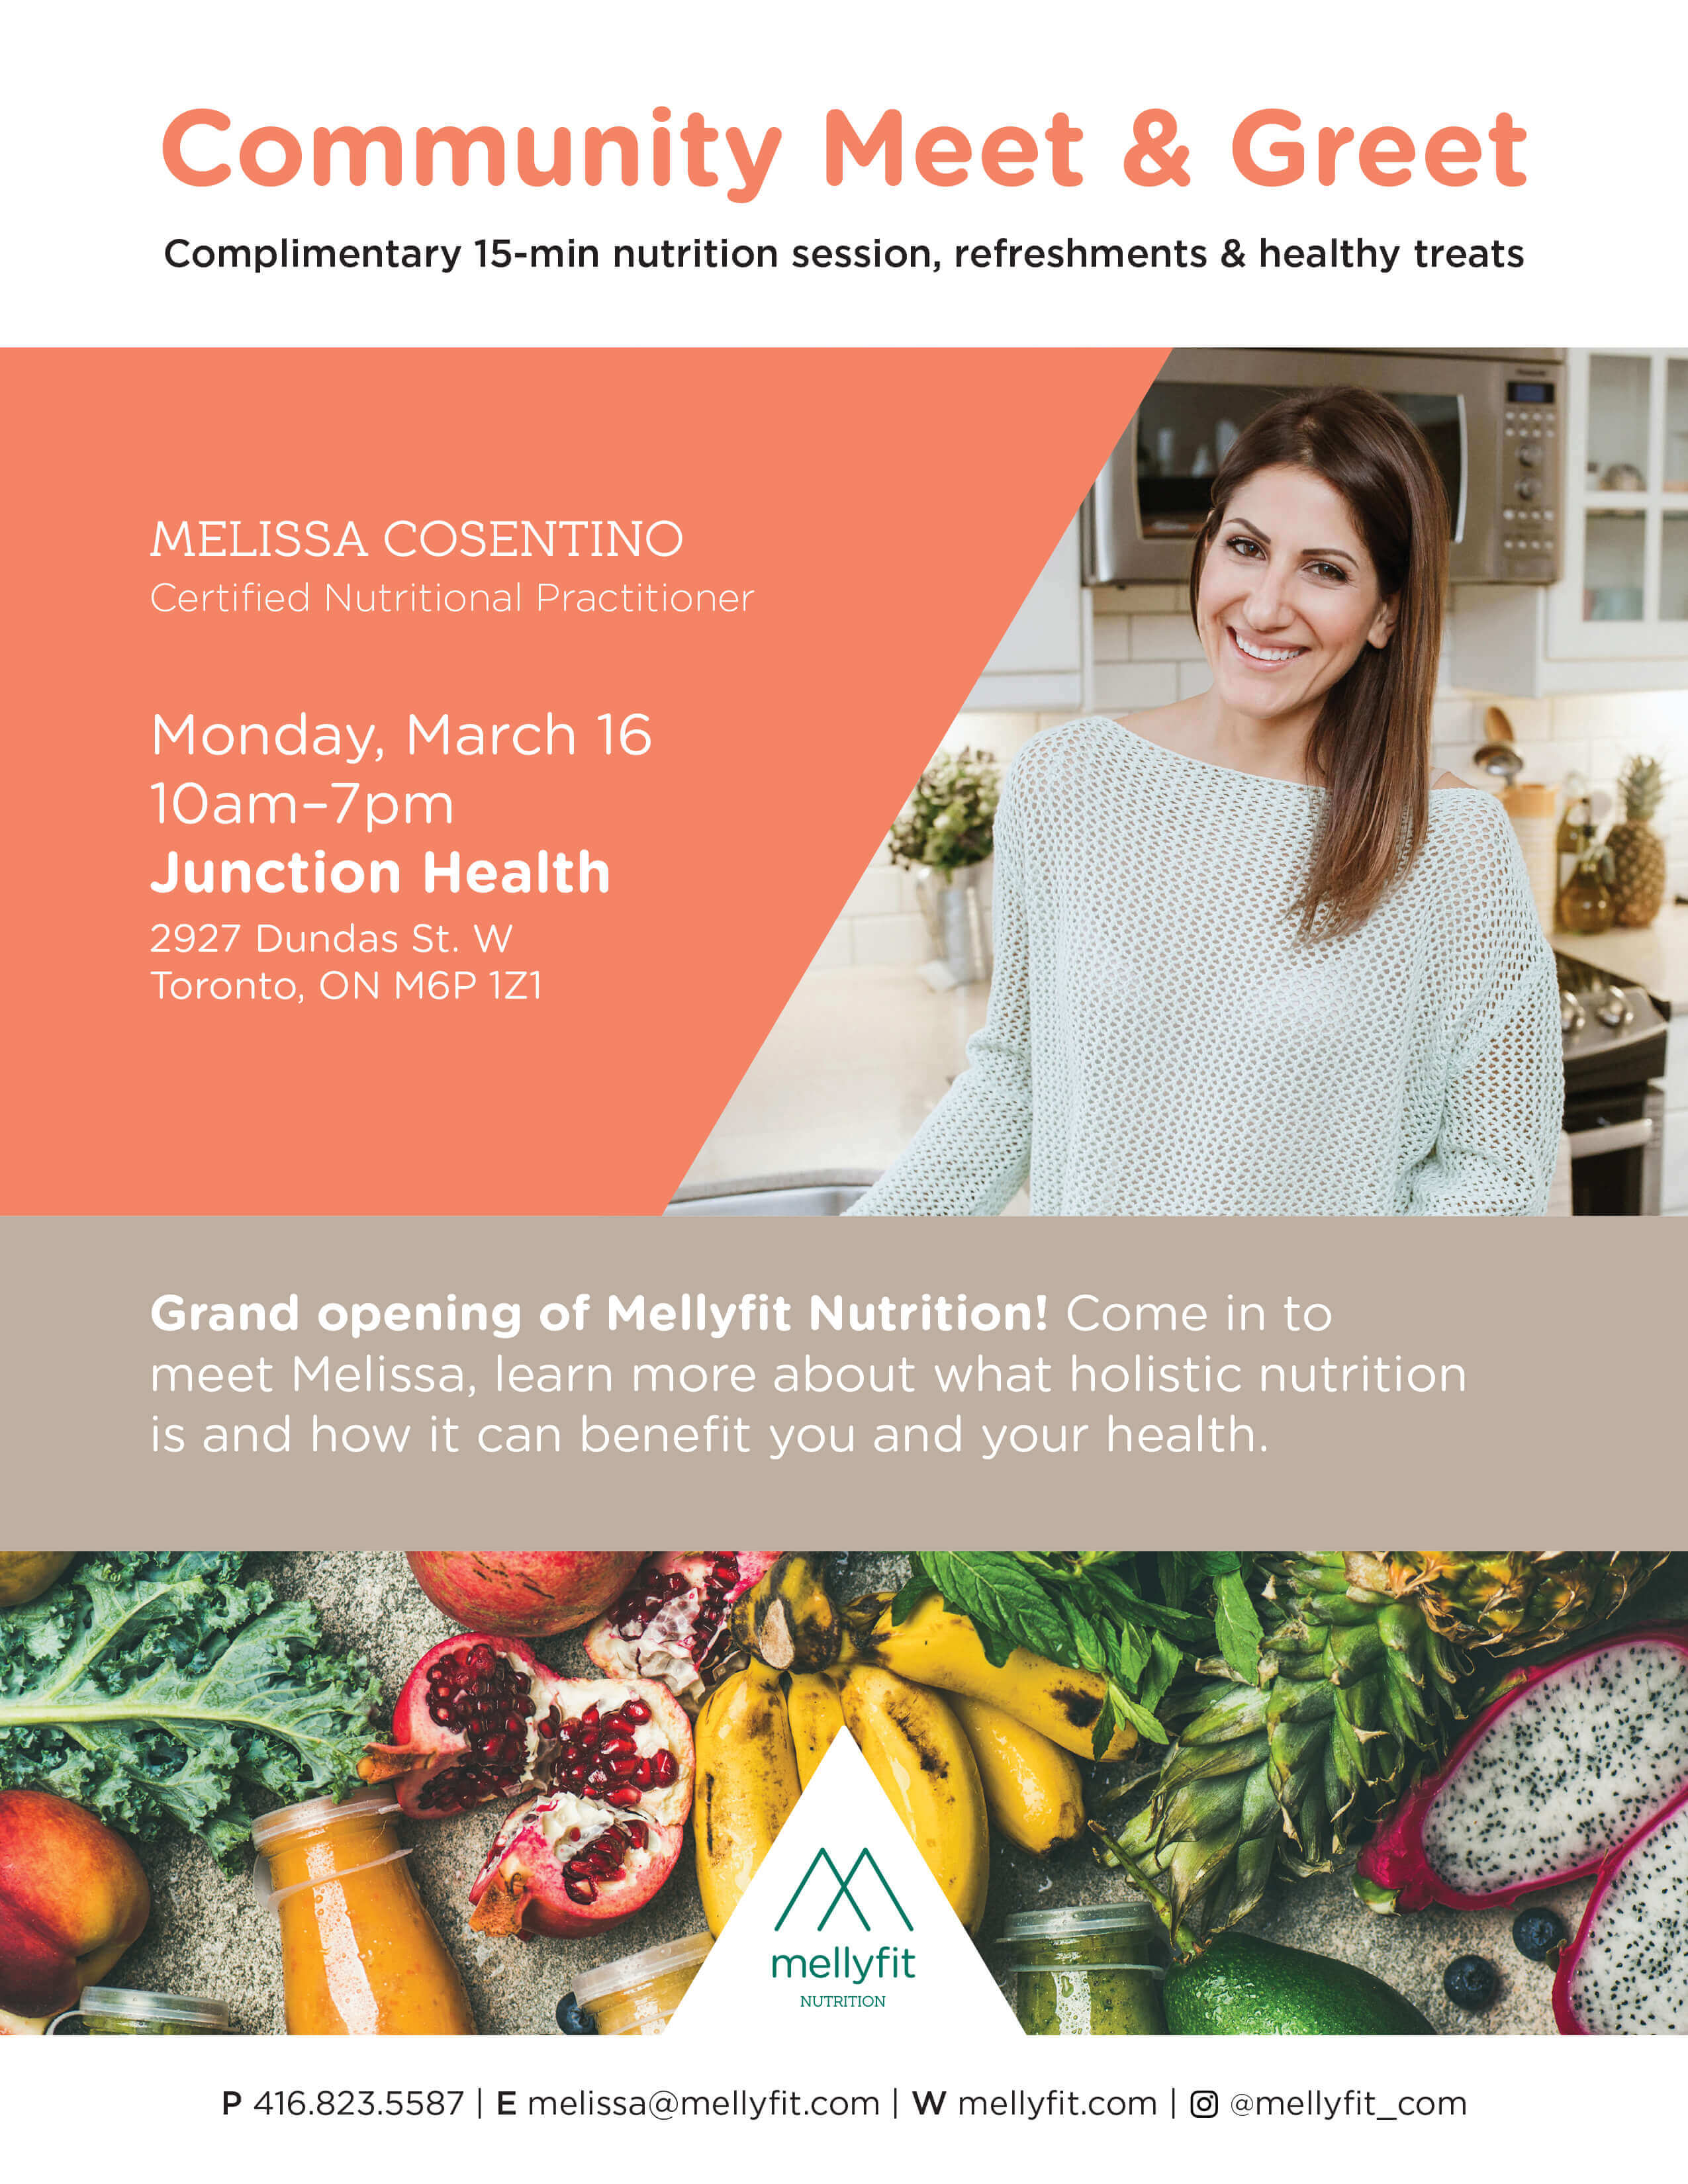 MellyFit Nutrition - Event on March 16th - Meet and Greet